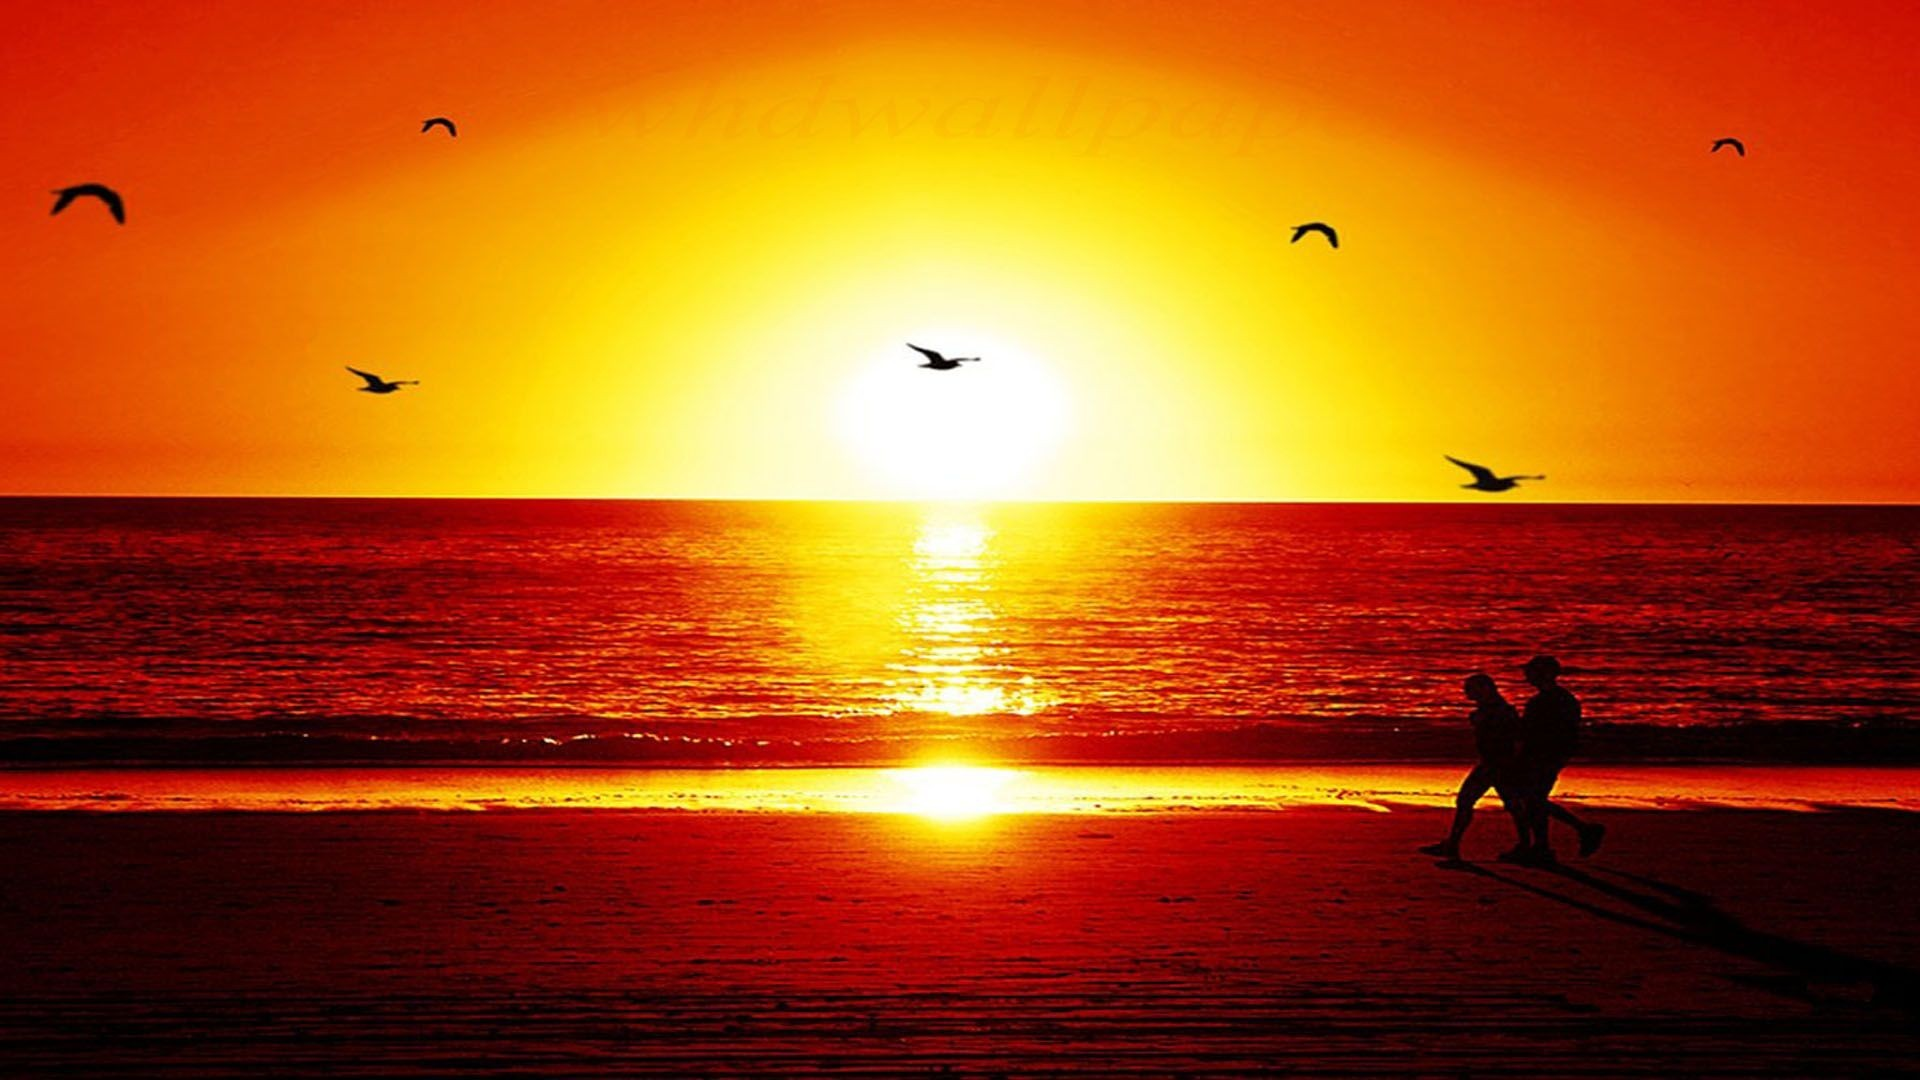 wallpaper details file name sunset wallpaper hd widescreen uploaded by .